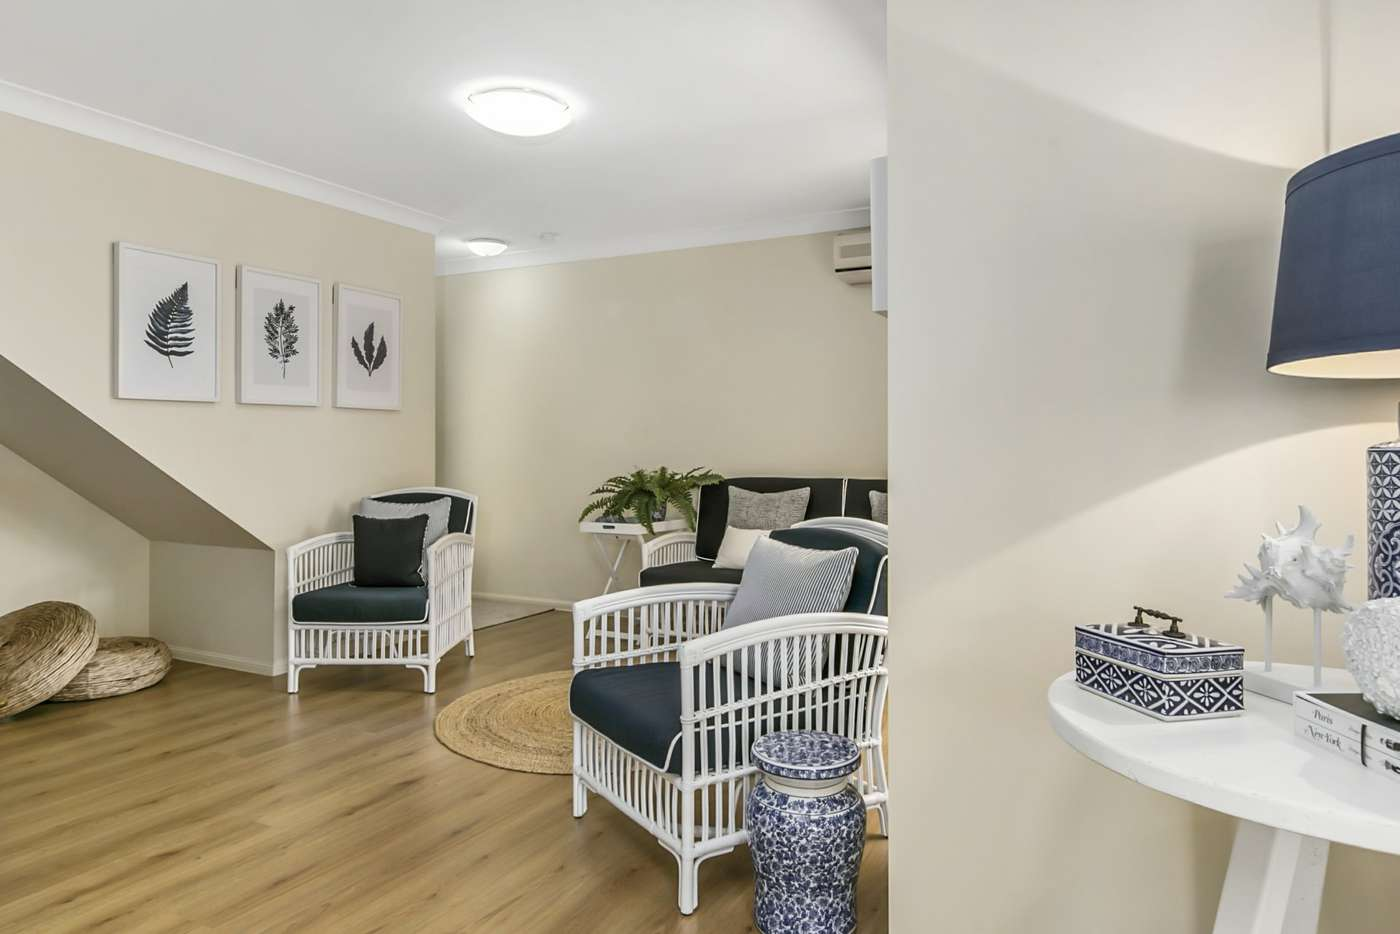 Sixth view of Homely townhouse listing, 7/30 Bride Street, Wynnum QLD 4178